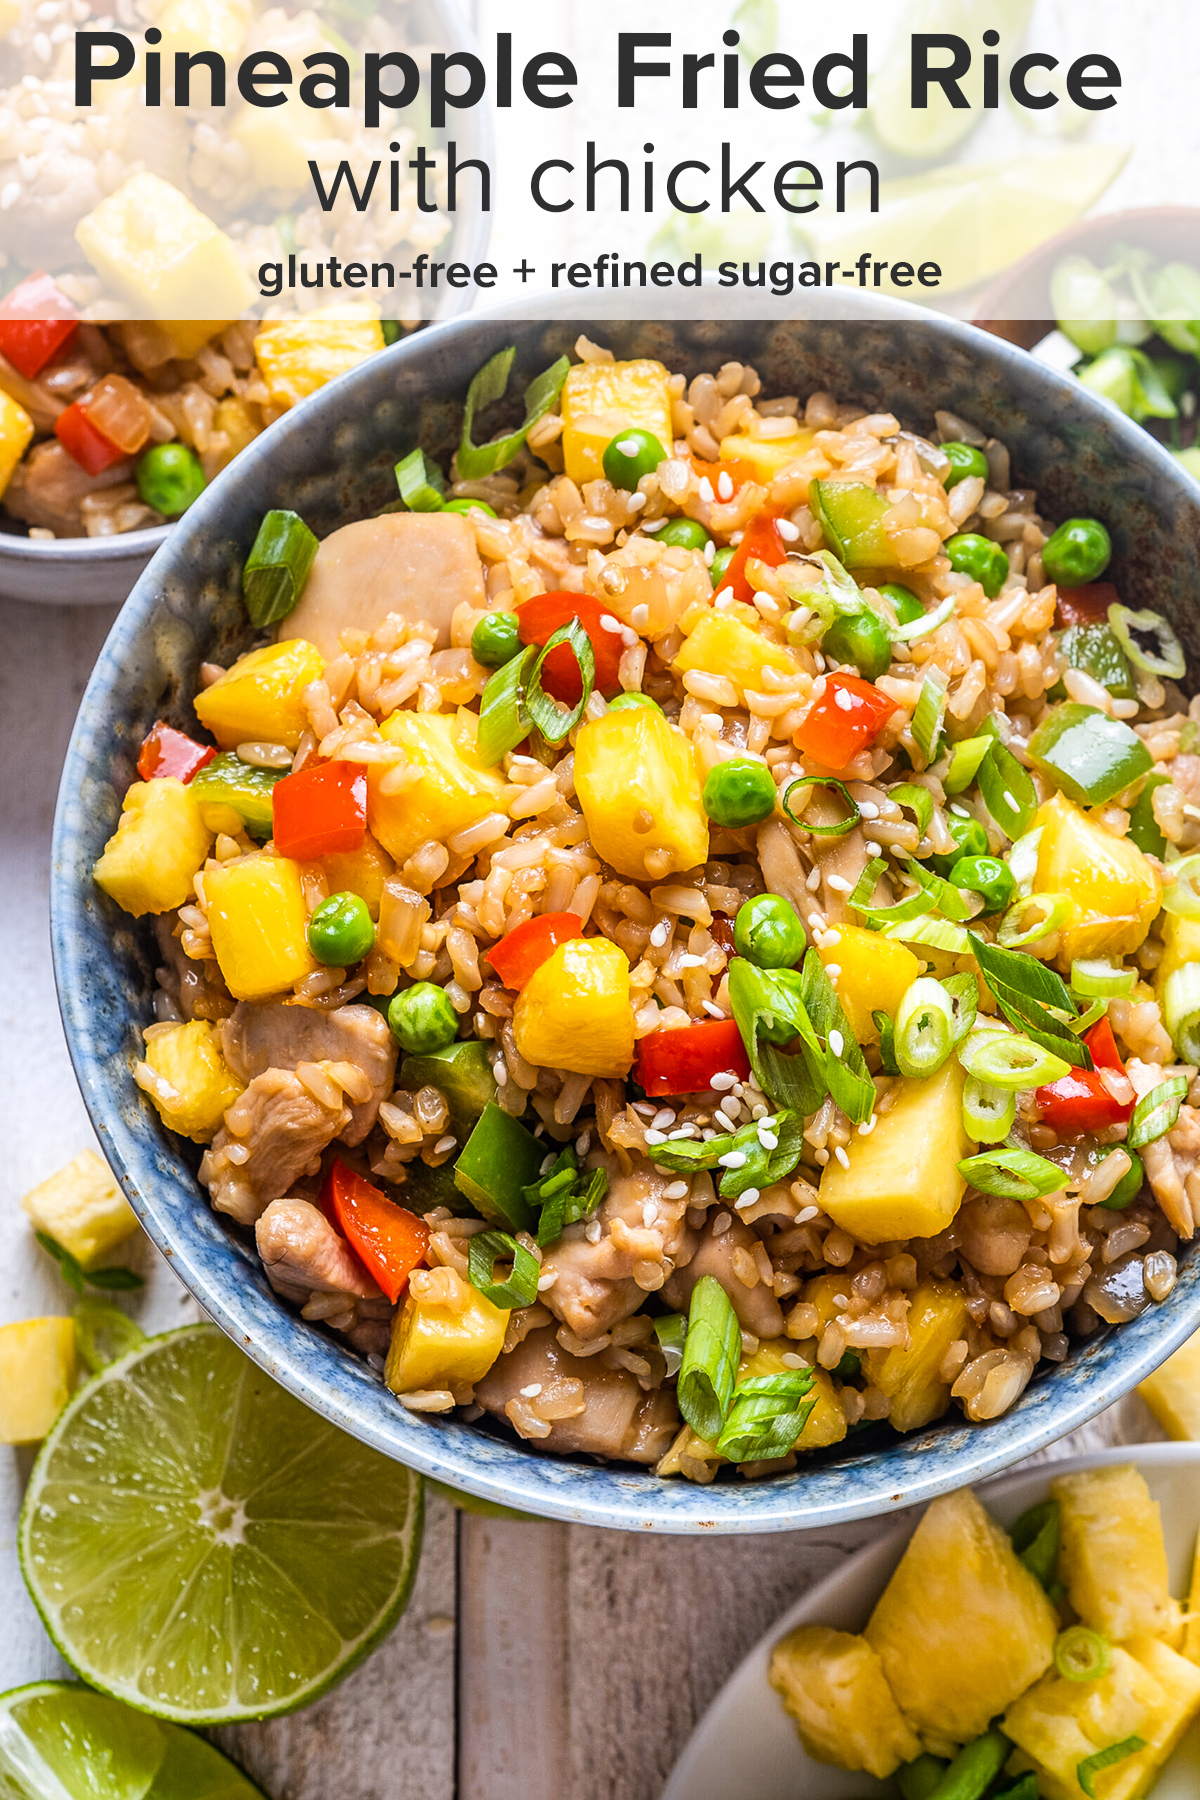 Pineapple fried rice in a blue bowl with the recipe title on top of the picture.